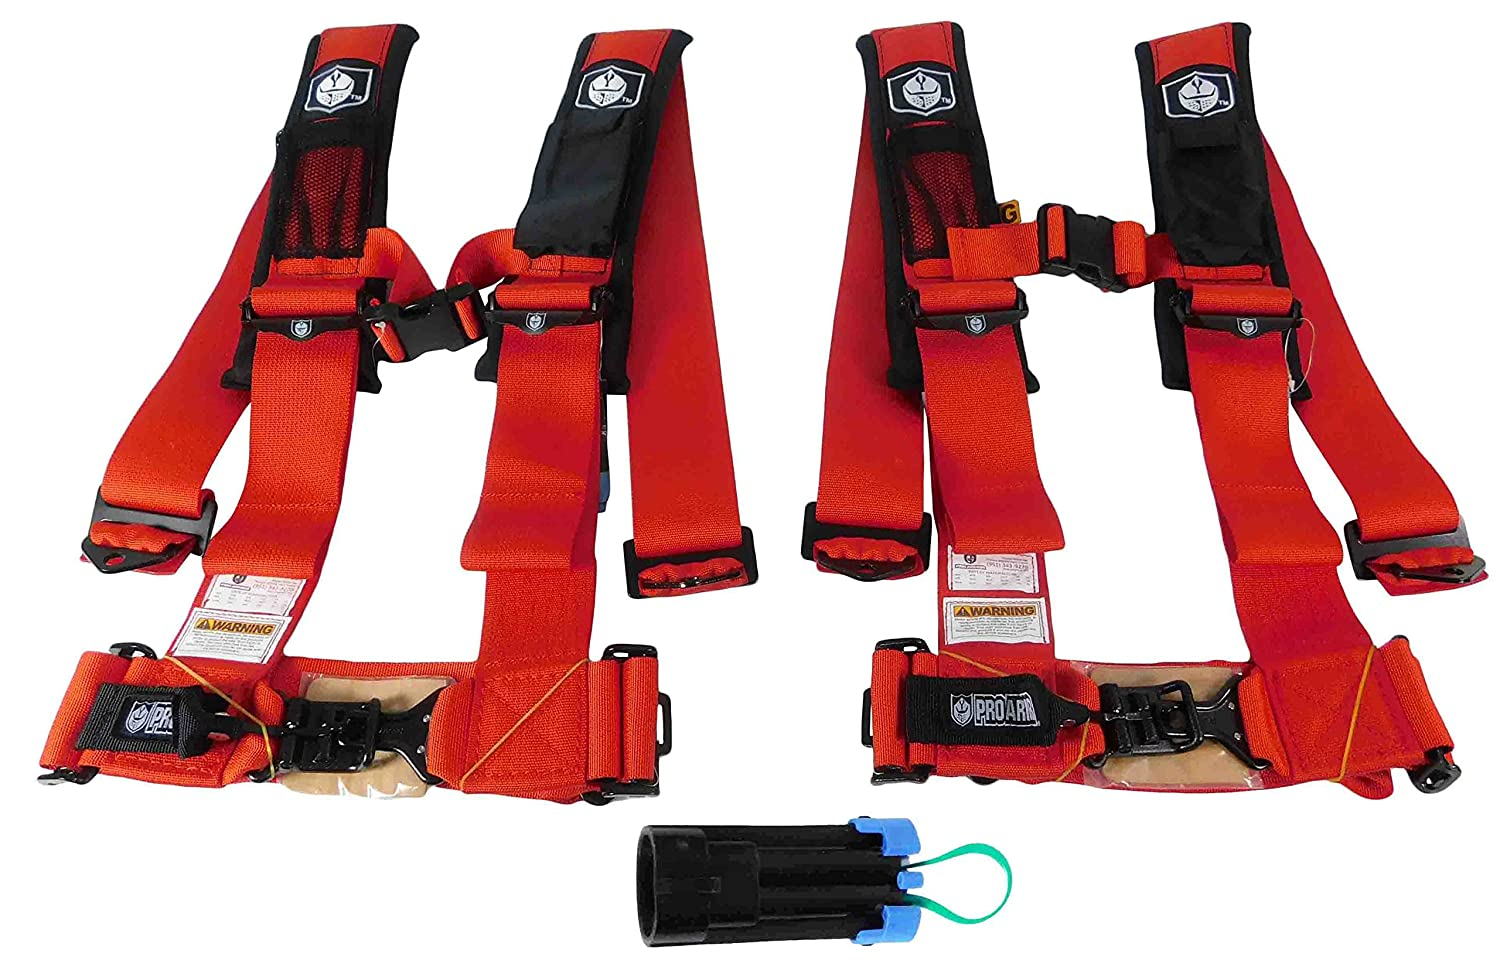 Pro Armor A114230RD(x2) P151100 4 Point 3' Harness w Override Clip - Red 2 PACK